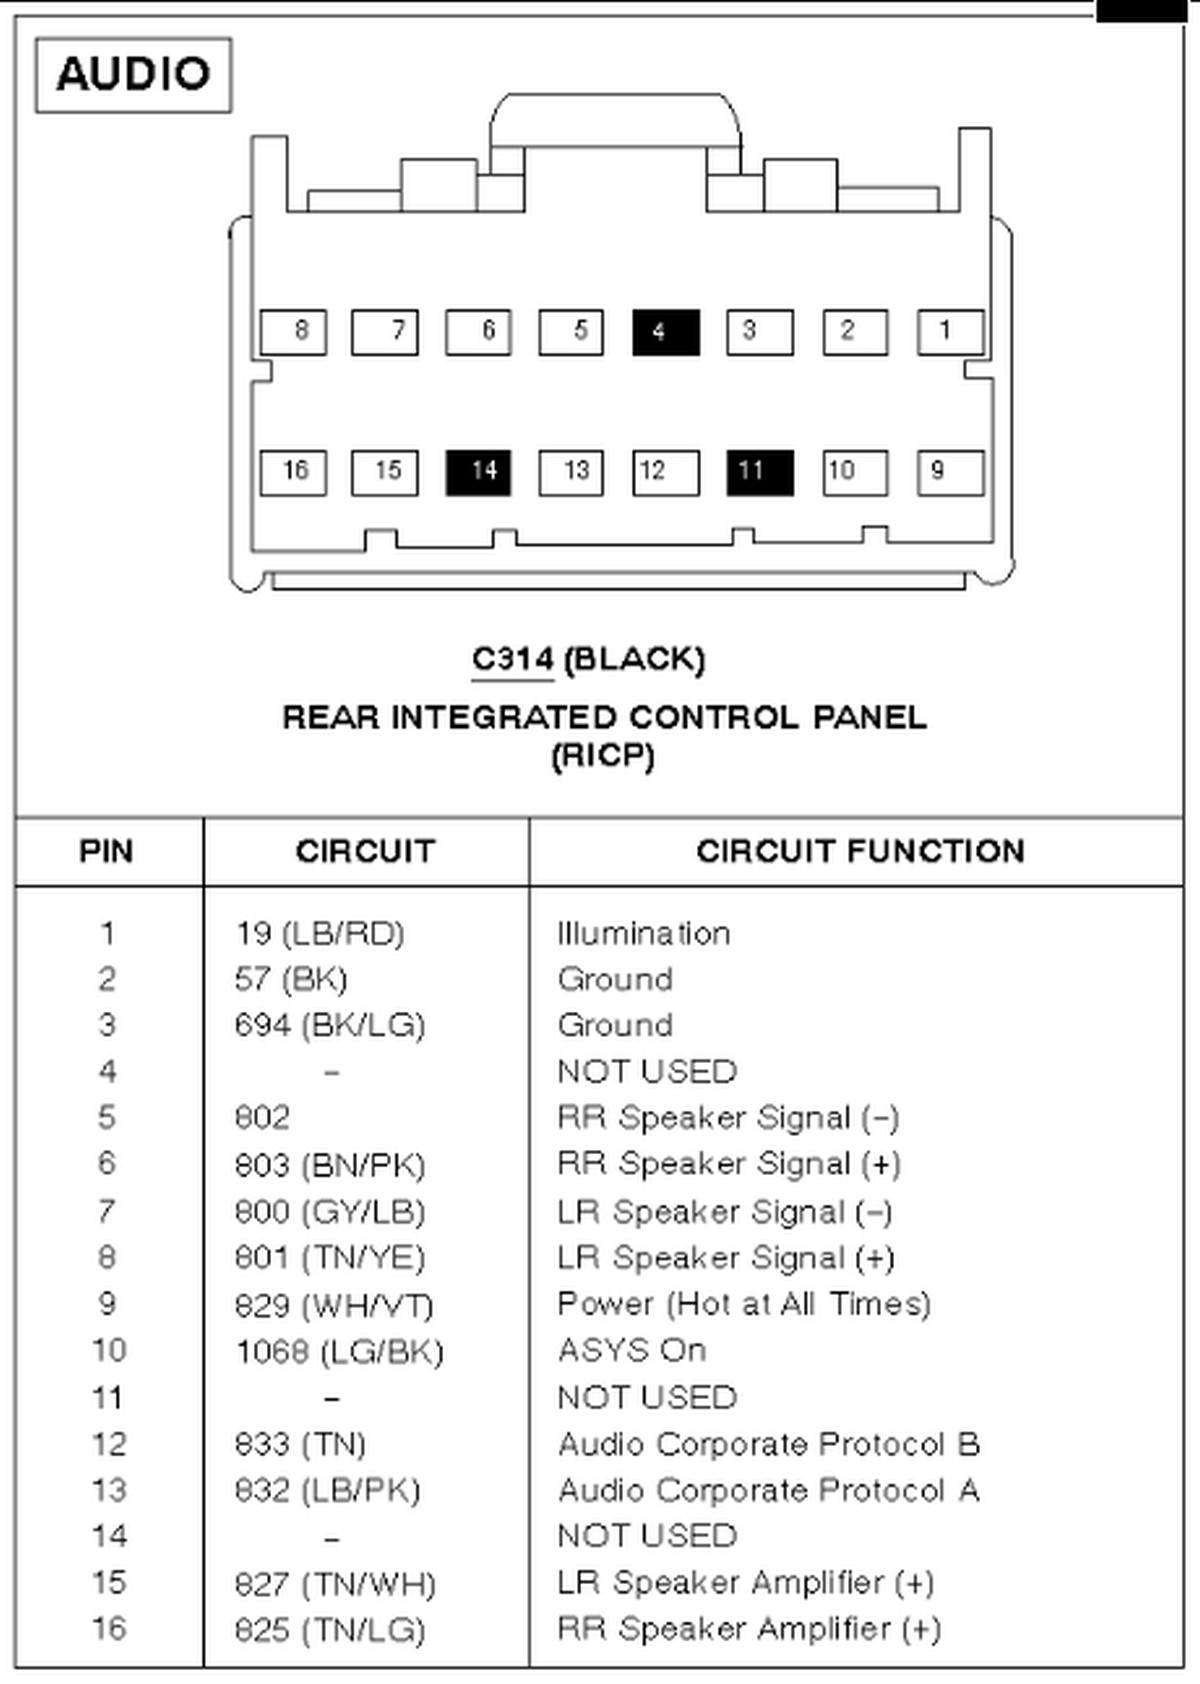 Need Rear Seat Entertainment Wiring Diagram For 2001 Eddie Bauer Ford Expedition